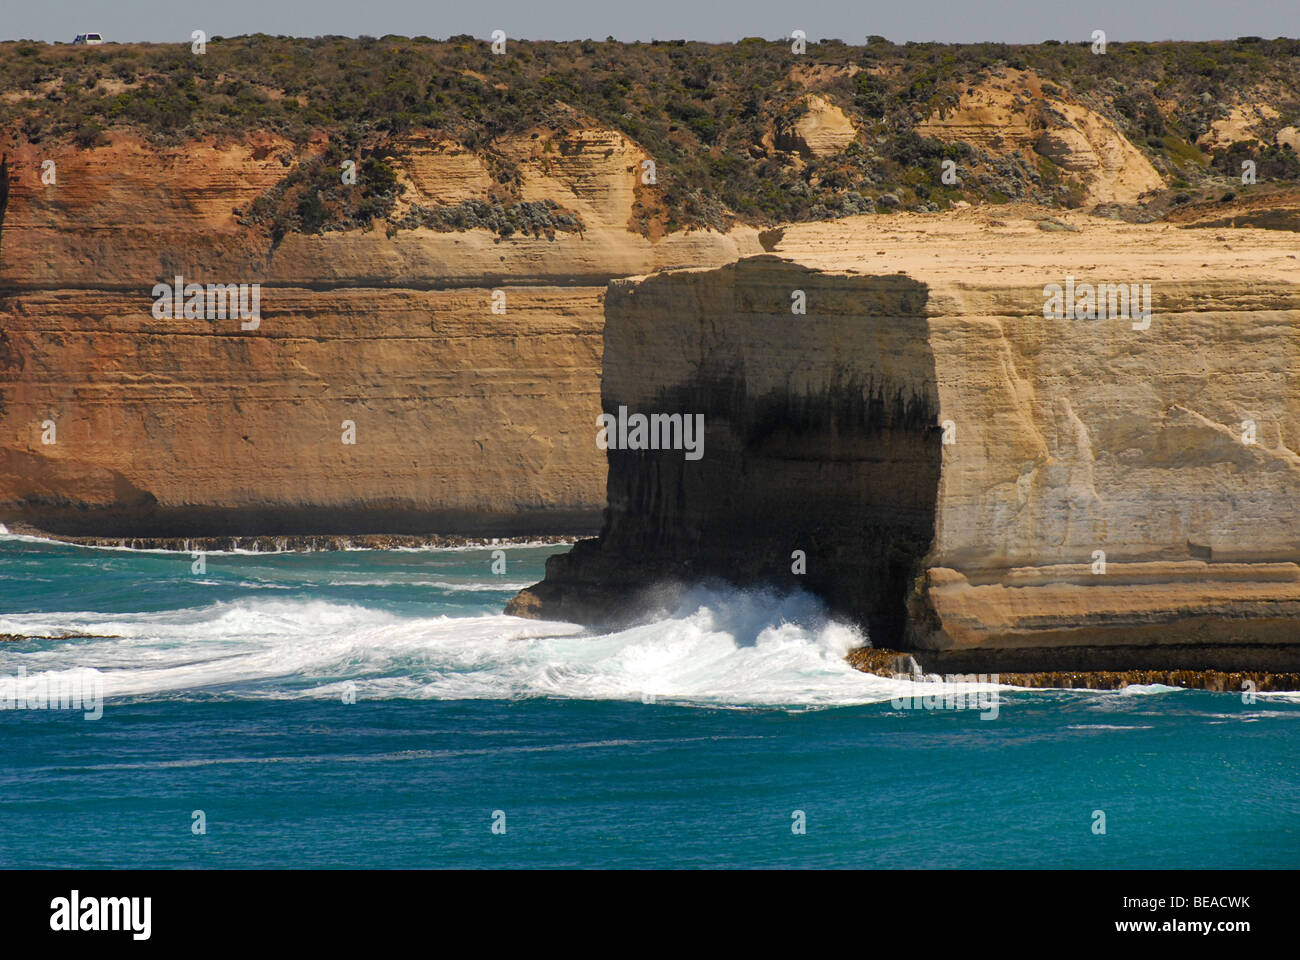 Water eroded coastline near the Twelve Apostles. Waves breaking. Ocean Road, Australia - Stock Image